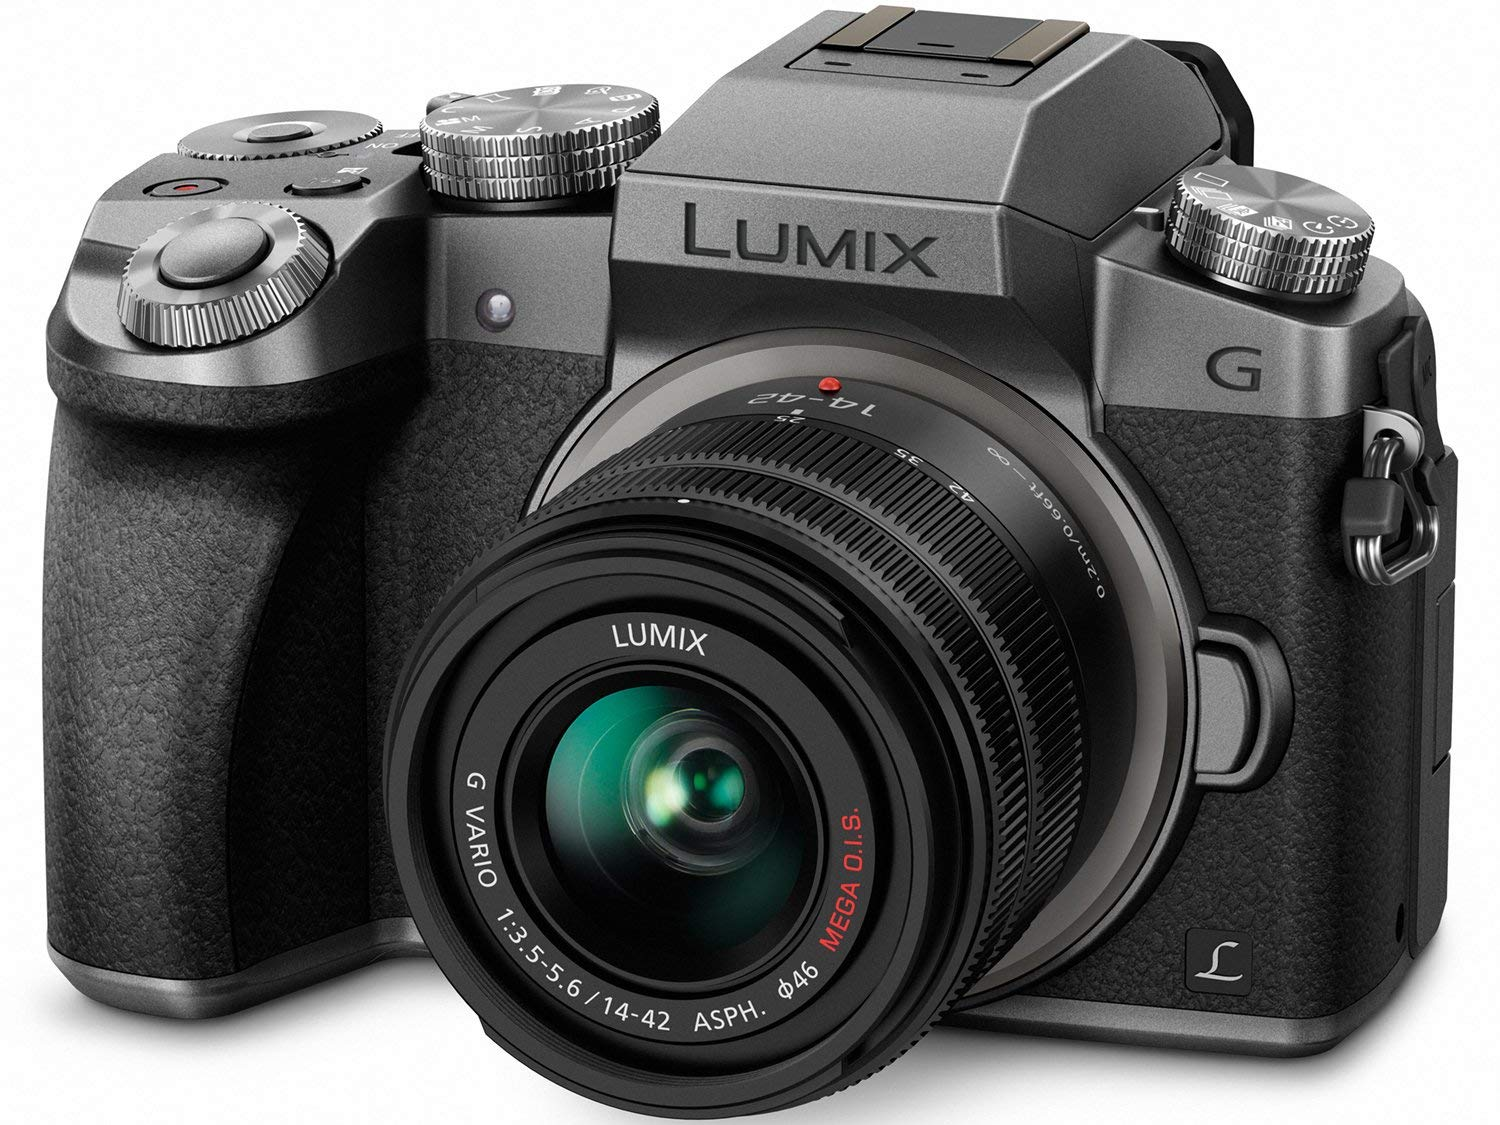 3. Camera - Panasonic Lumix G7 - I take this camera EVERYWHERE. This is a great camera forth pictures and video; however, I've found that this camera is perfect for travel mainly because of its light weight. Just under $500 it is a mirrorless digital camera with a swivel touch screen. If you are confused on what kind of camera to purchase, I believe this to be a GREAT and inexpensive starter camera!